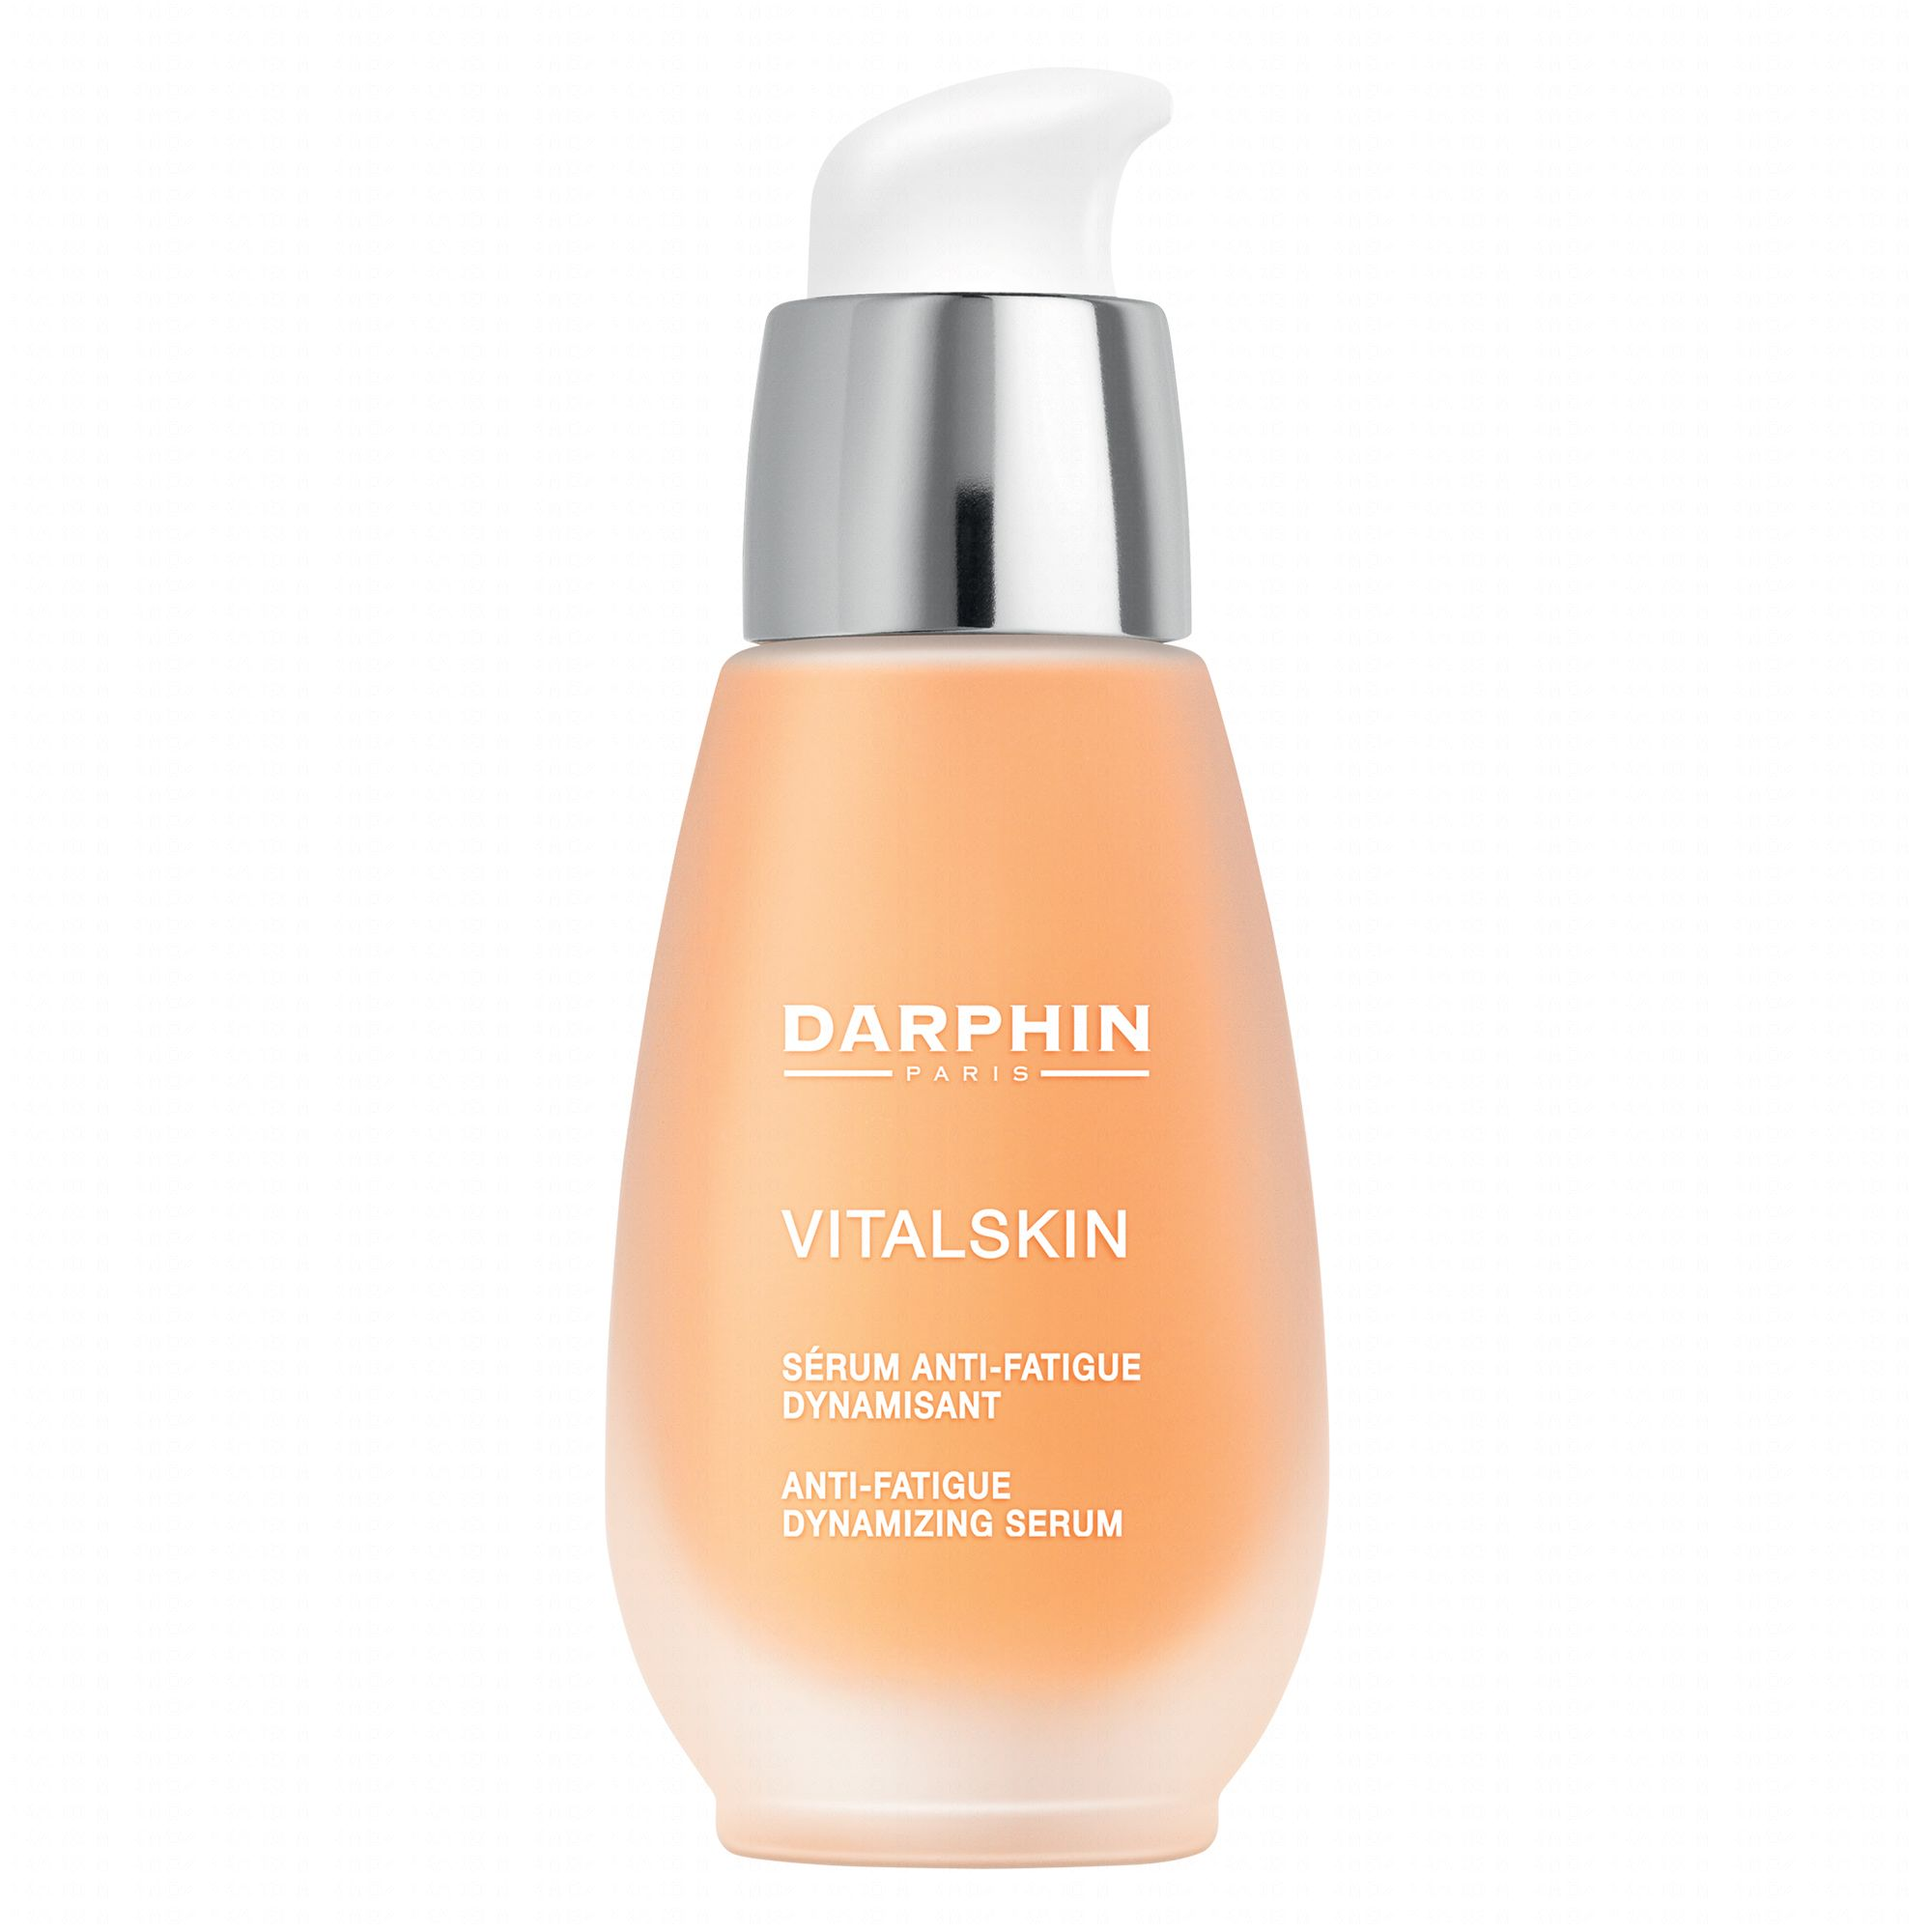 DARPHIN Vitalskin sérum anti-fatigue dynamisant flacon